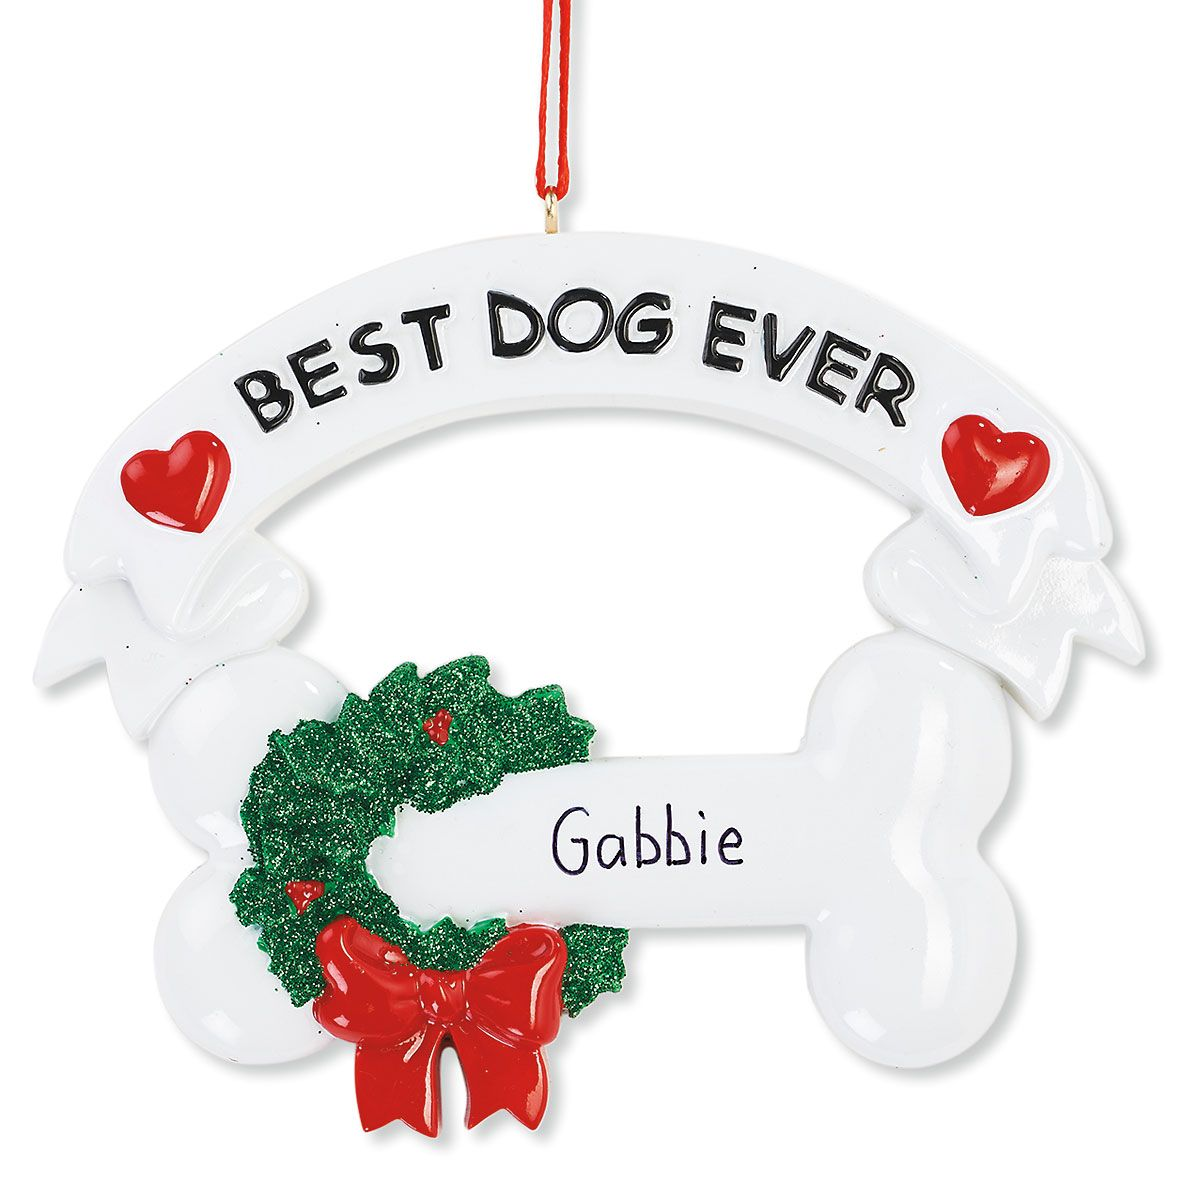 Best Dog Ever Hand-Lettered Christmas Ornament